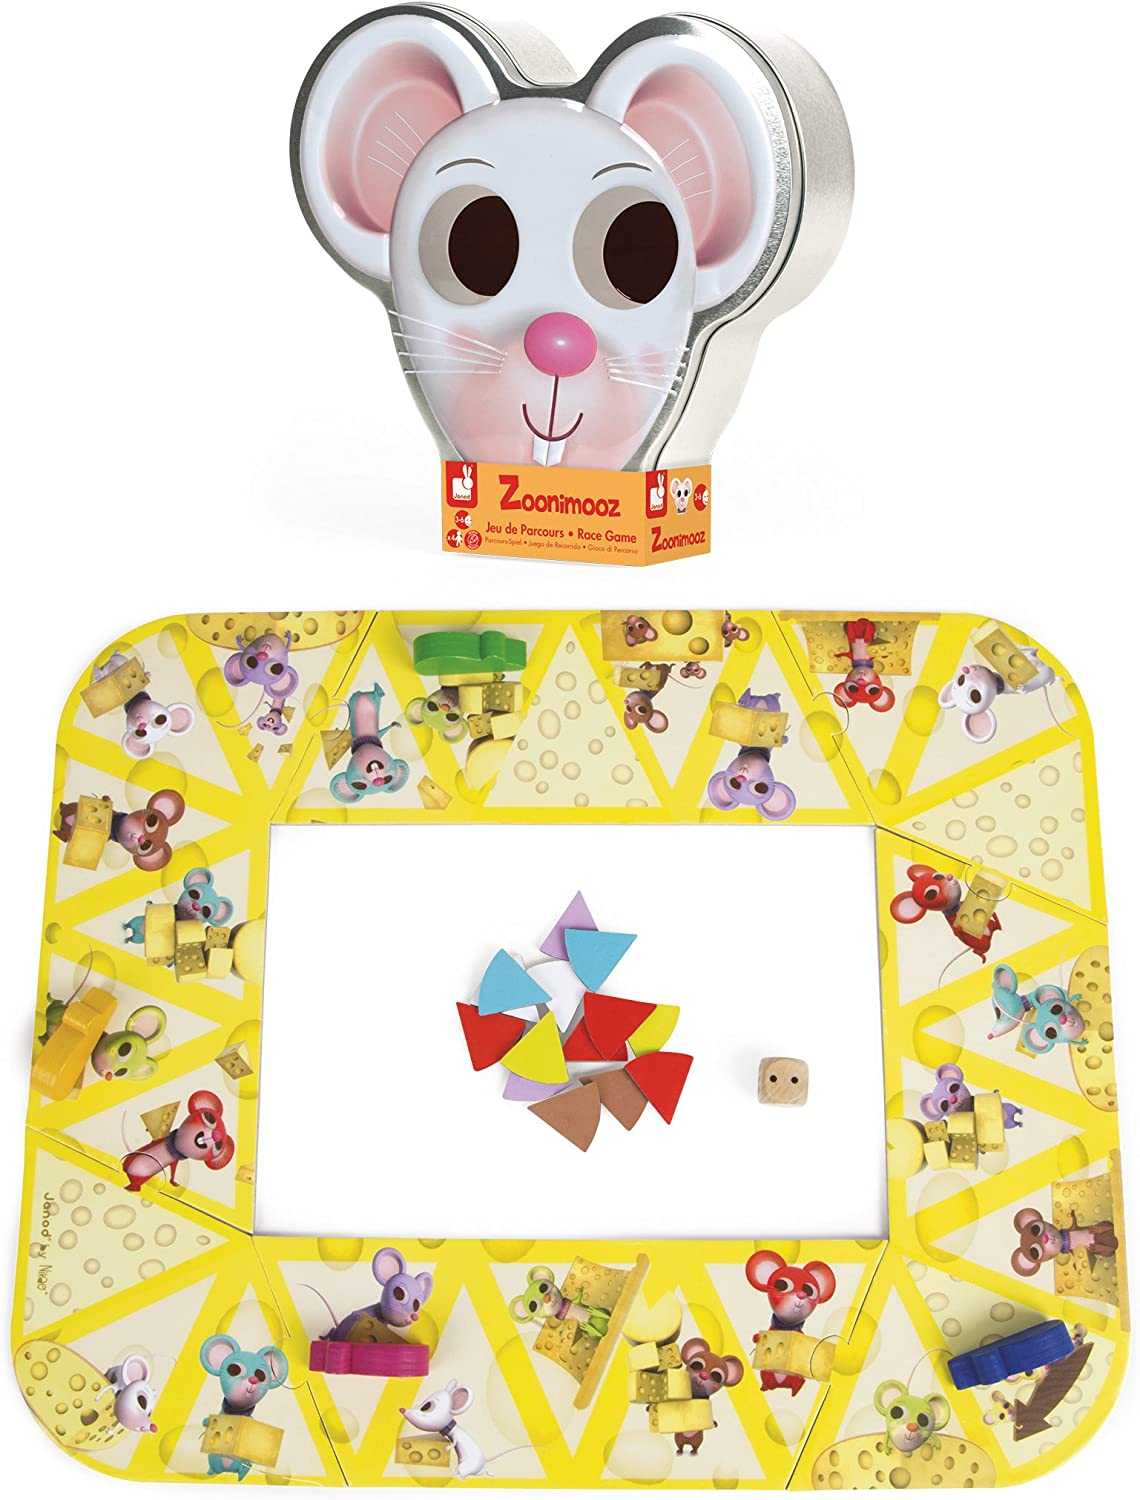 Janod Zoonimooz Mouse Action Tin Game, Mixed